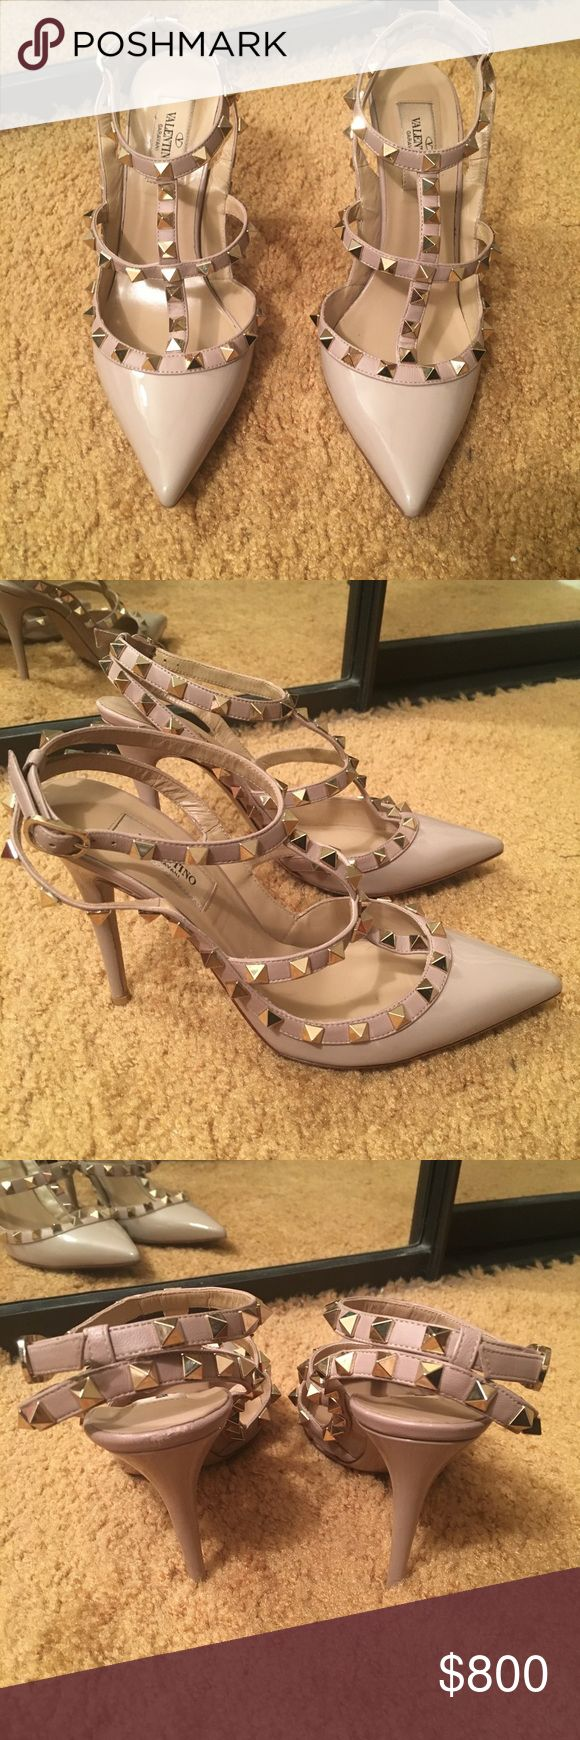 Valentino rockstud t-strap pump nude size 37 Patent leather Size US 6.5 / EU 37 Does not come with box or dust bag Has been worn and refinished Final sale Valentino Shoes Heels